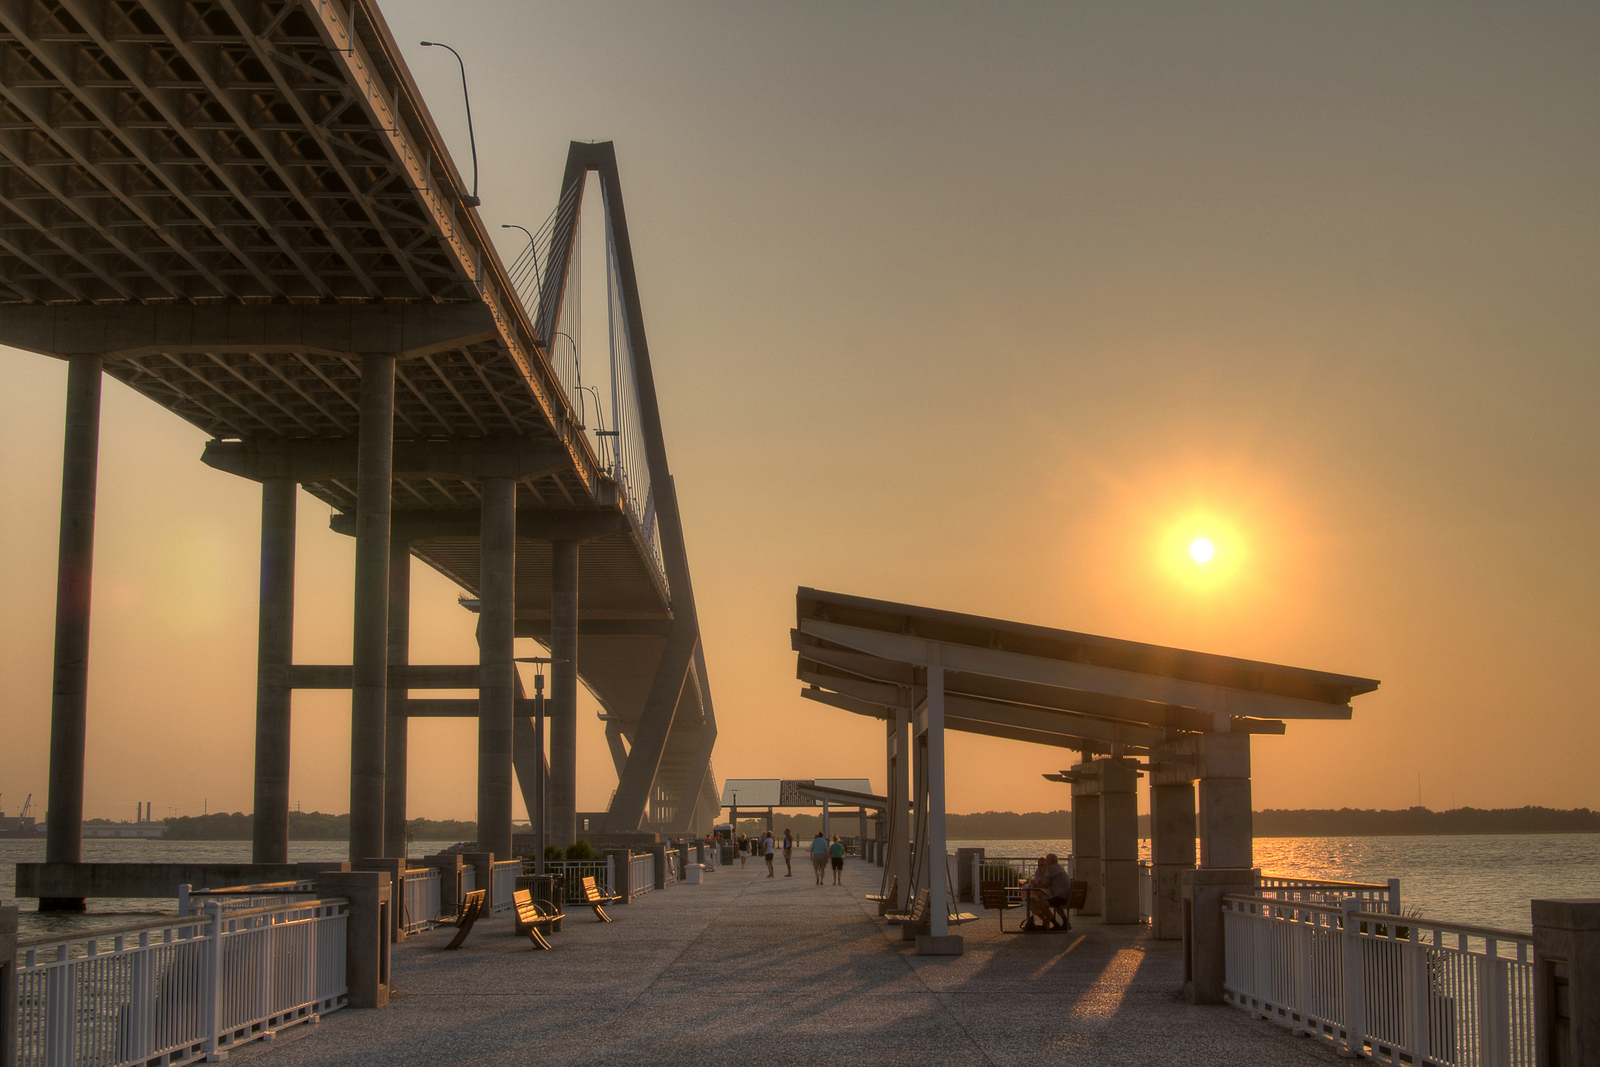 Gorgeous sunset view from the Fishing Pier, tucked away beneath the Arthur Ravenel, Jr. Bridge, at the Visitor Center in Mt. Pleasant, SC on Tuesday, July 8, 2014. Copyright 2014 Jason Barnette